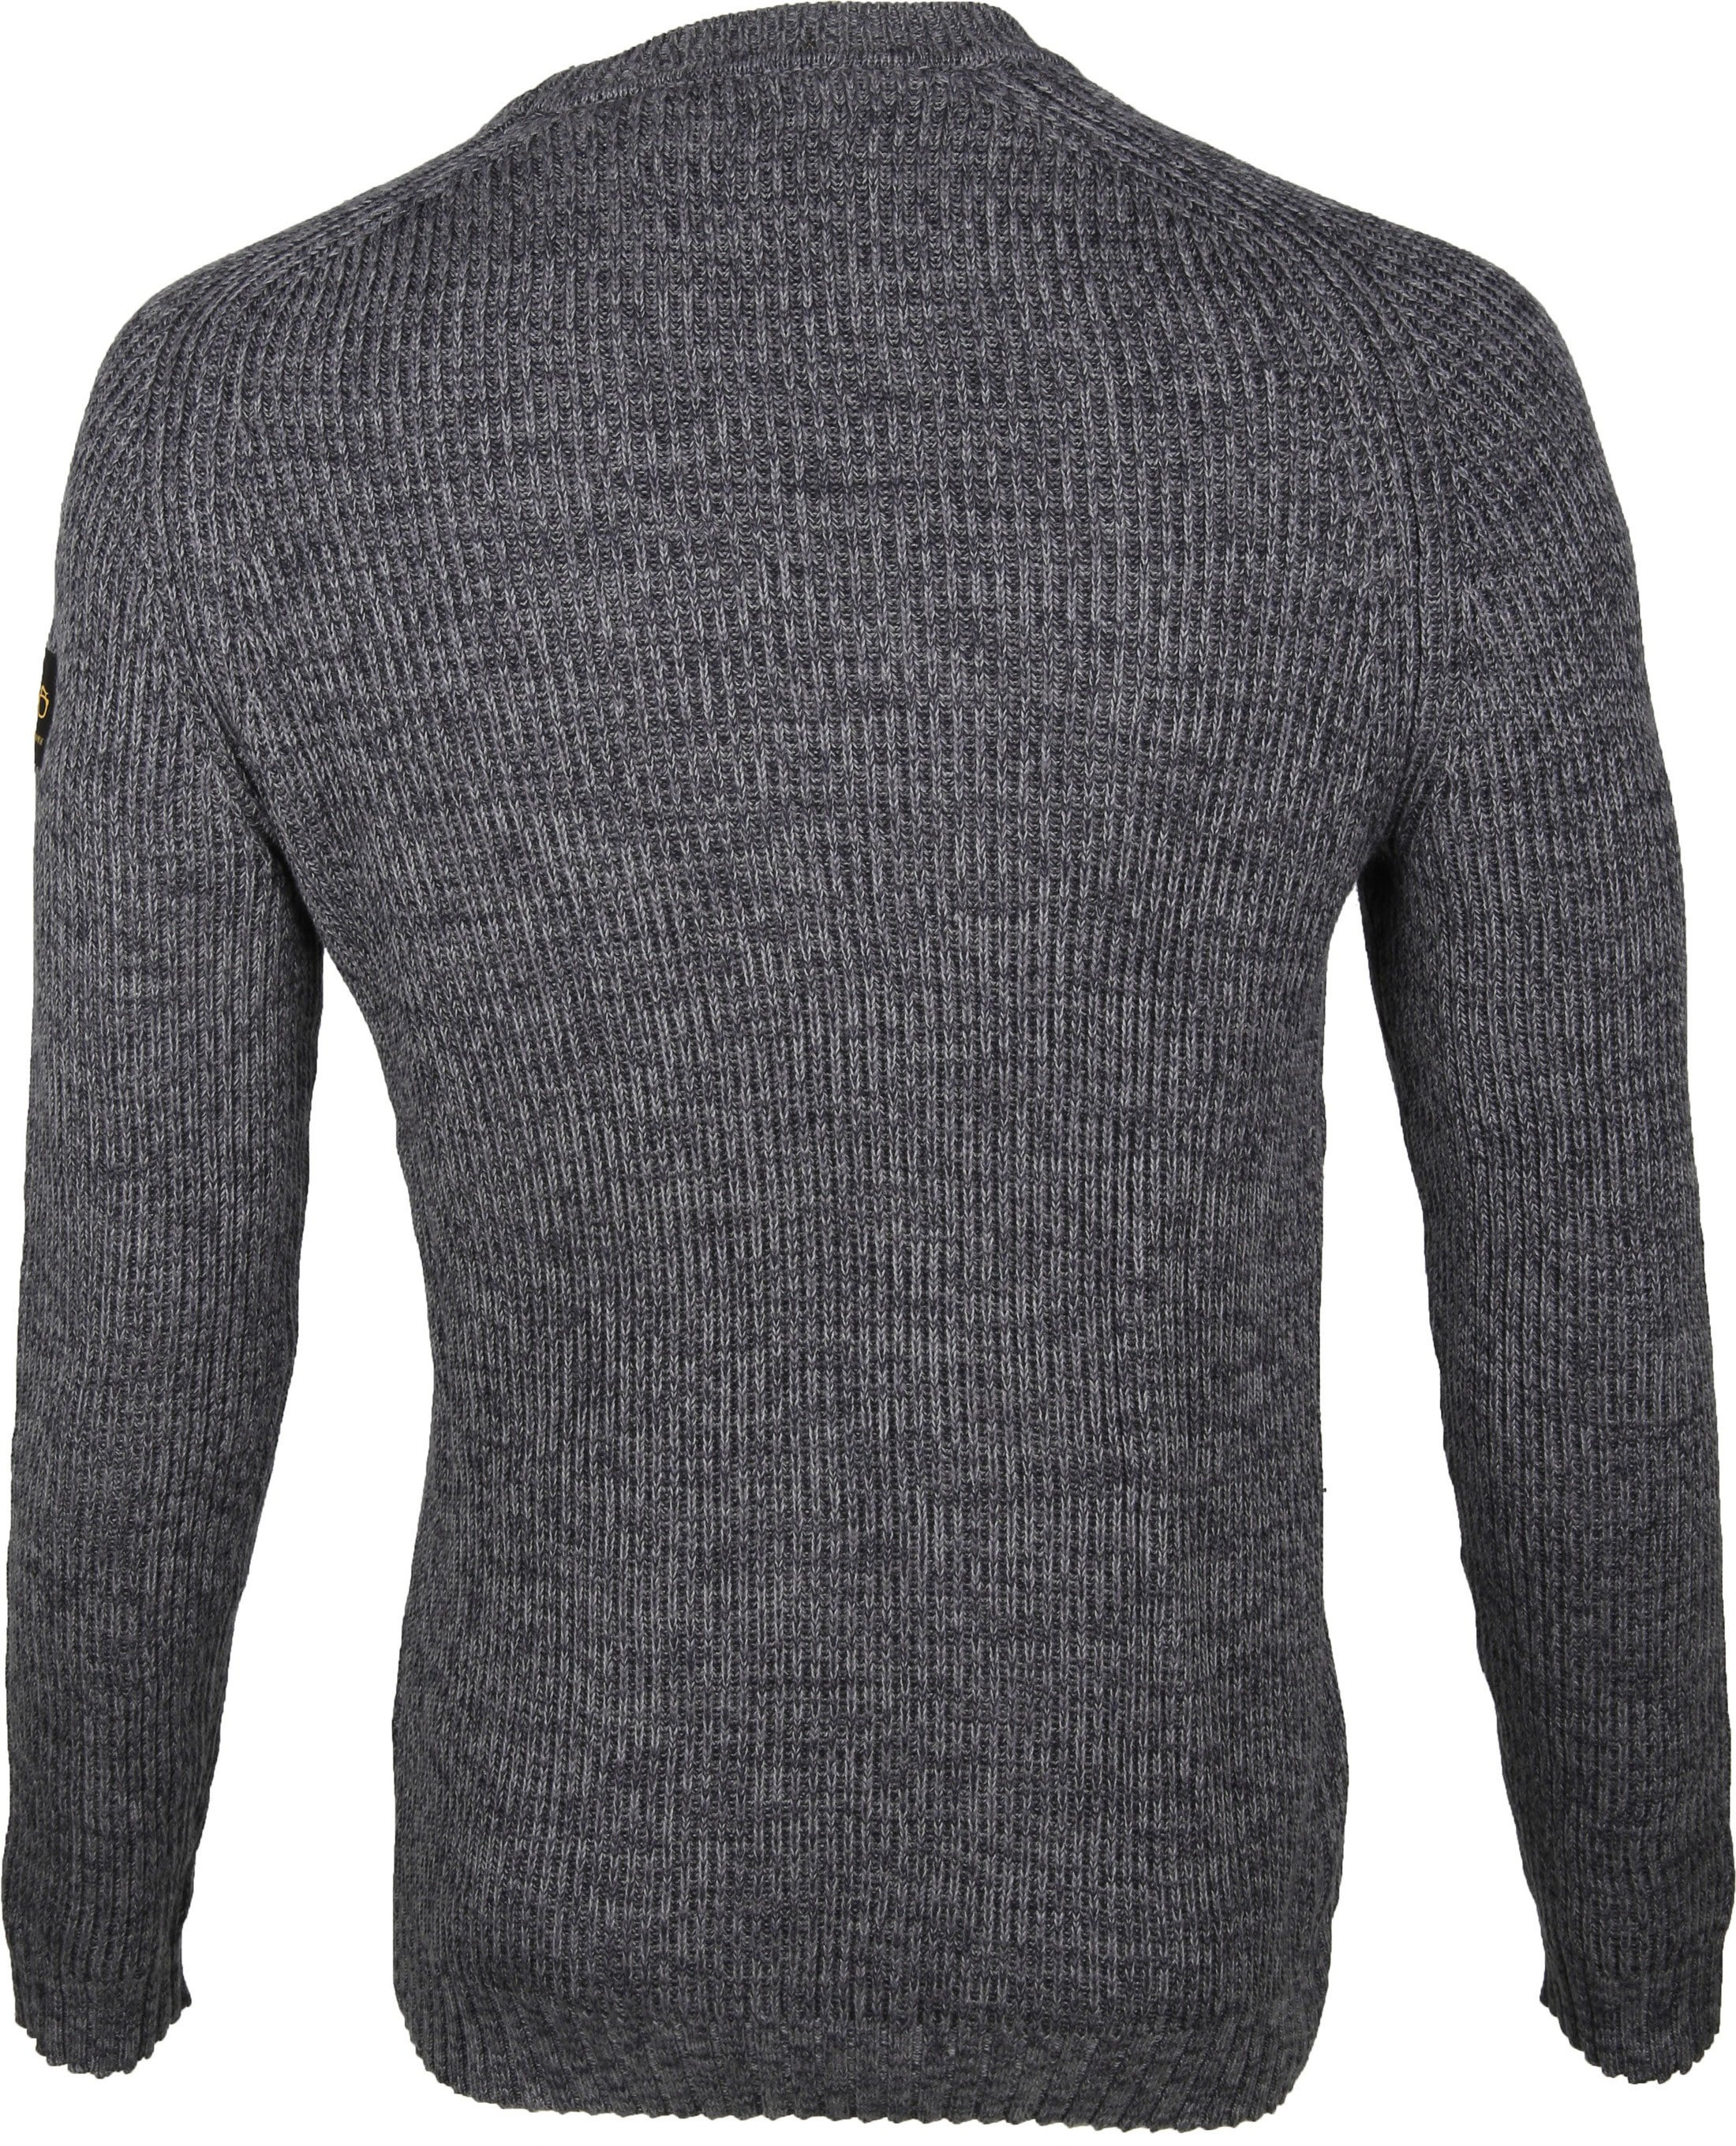 New In Town Sweater Antraciet foto 3